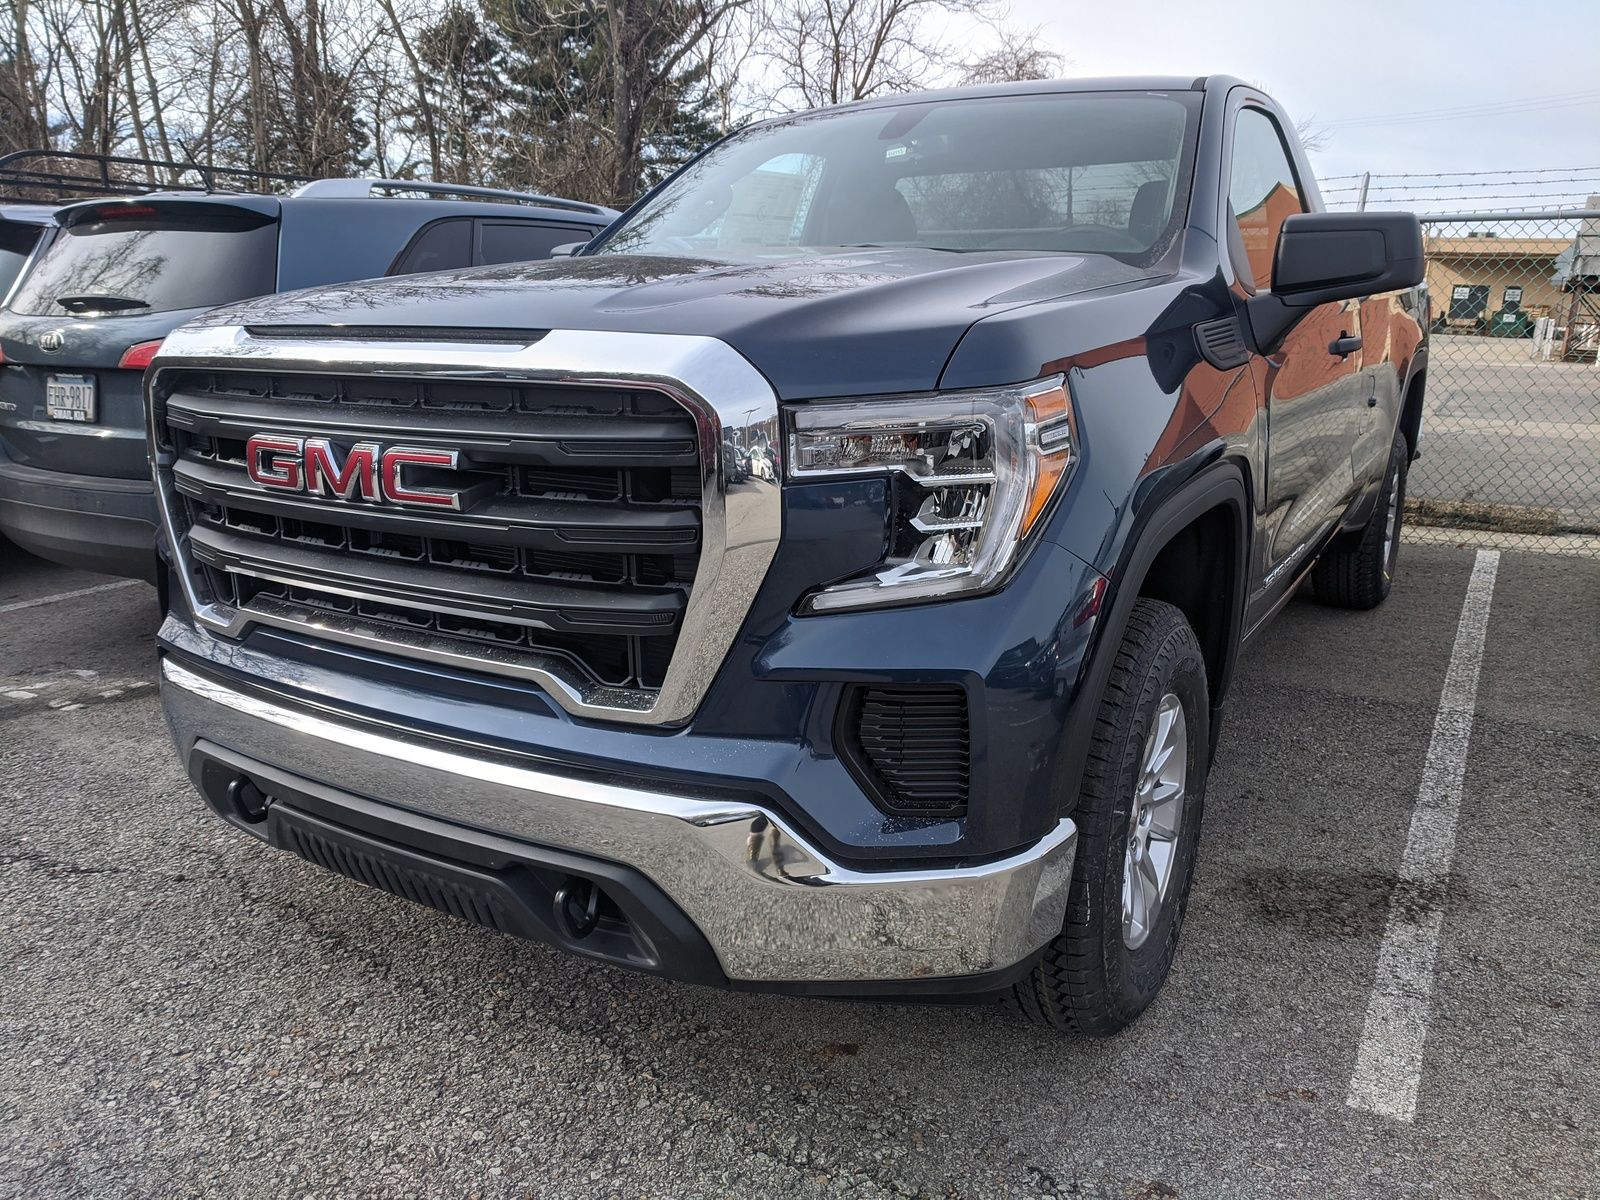 2021 GMC Sierra 1500 Regular Cab front angle view